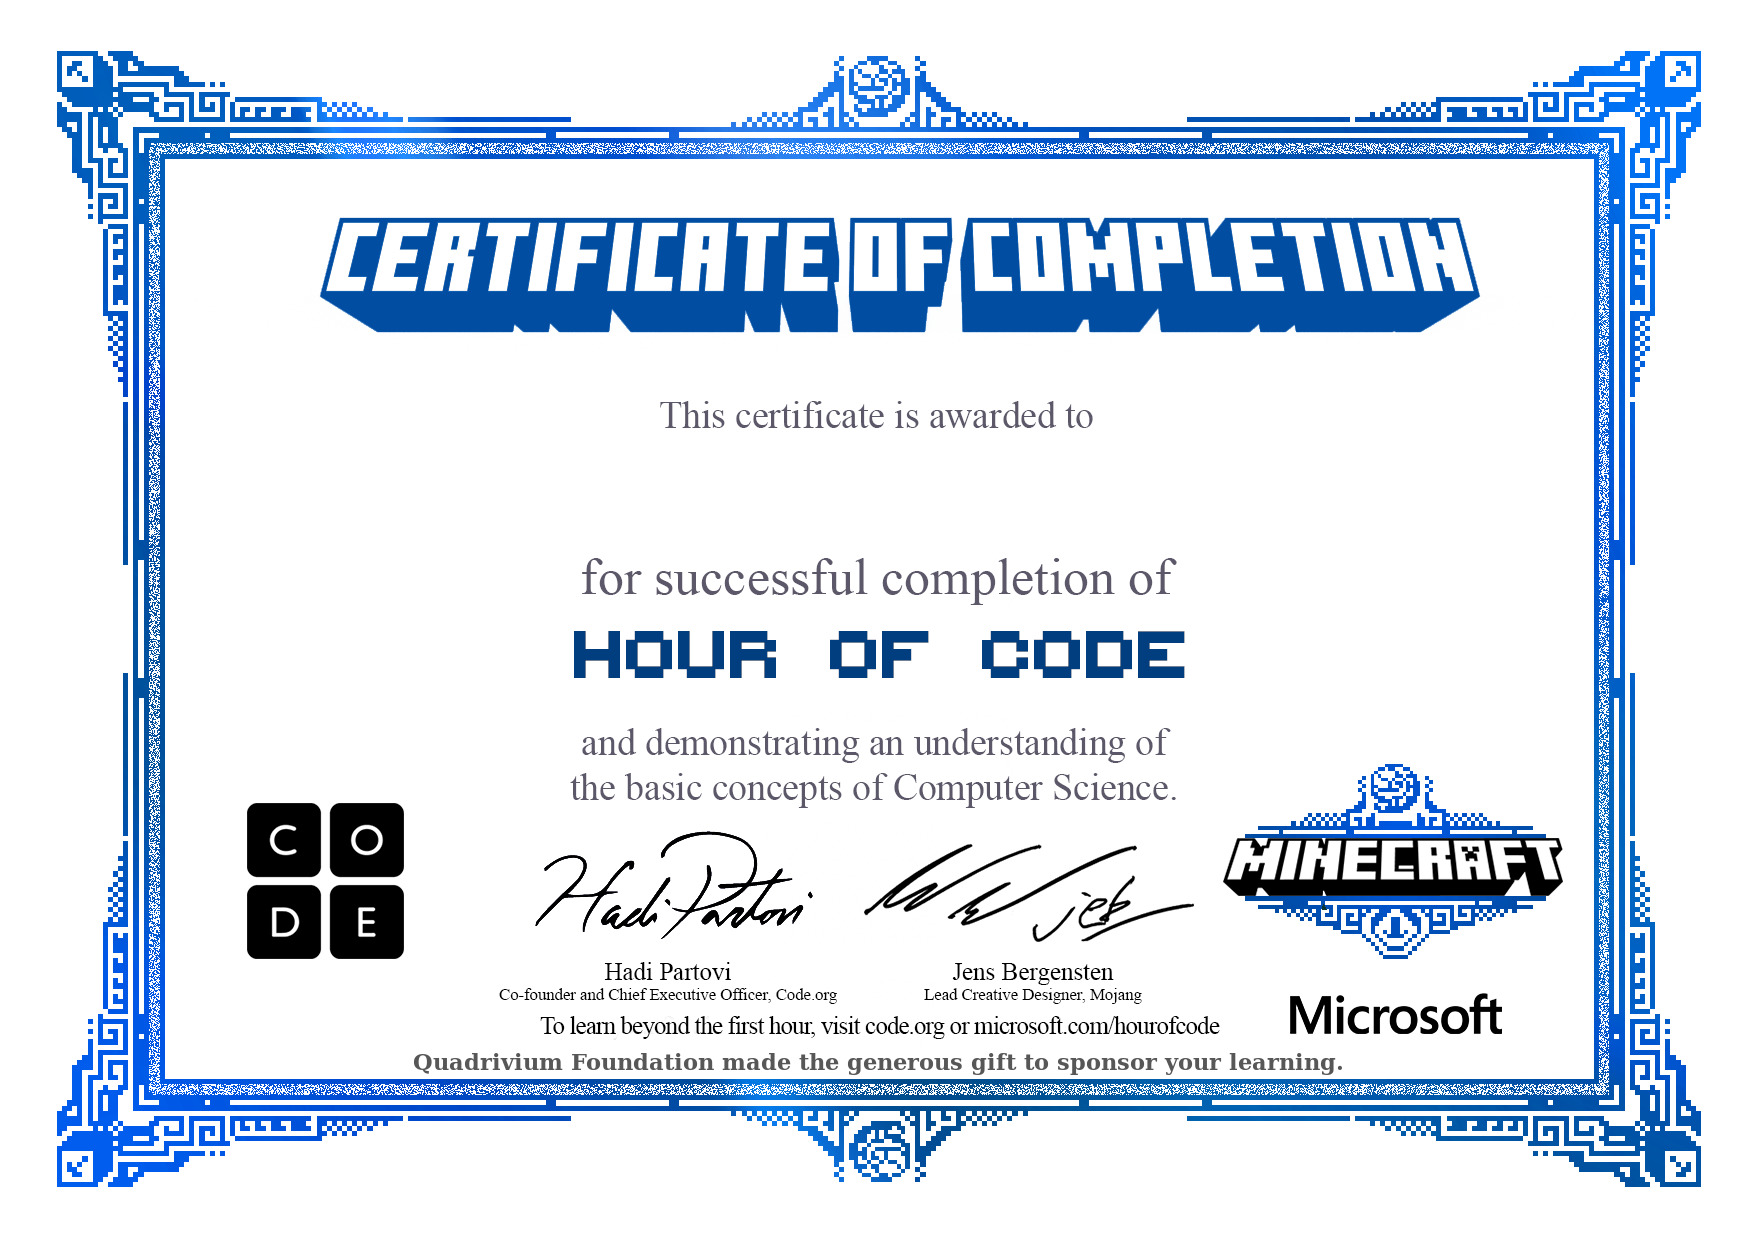 Certificate for Completion of One Hour of Code